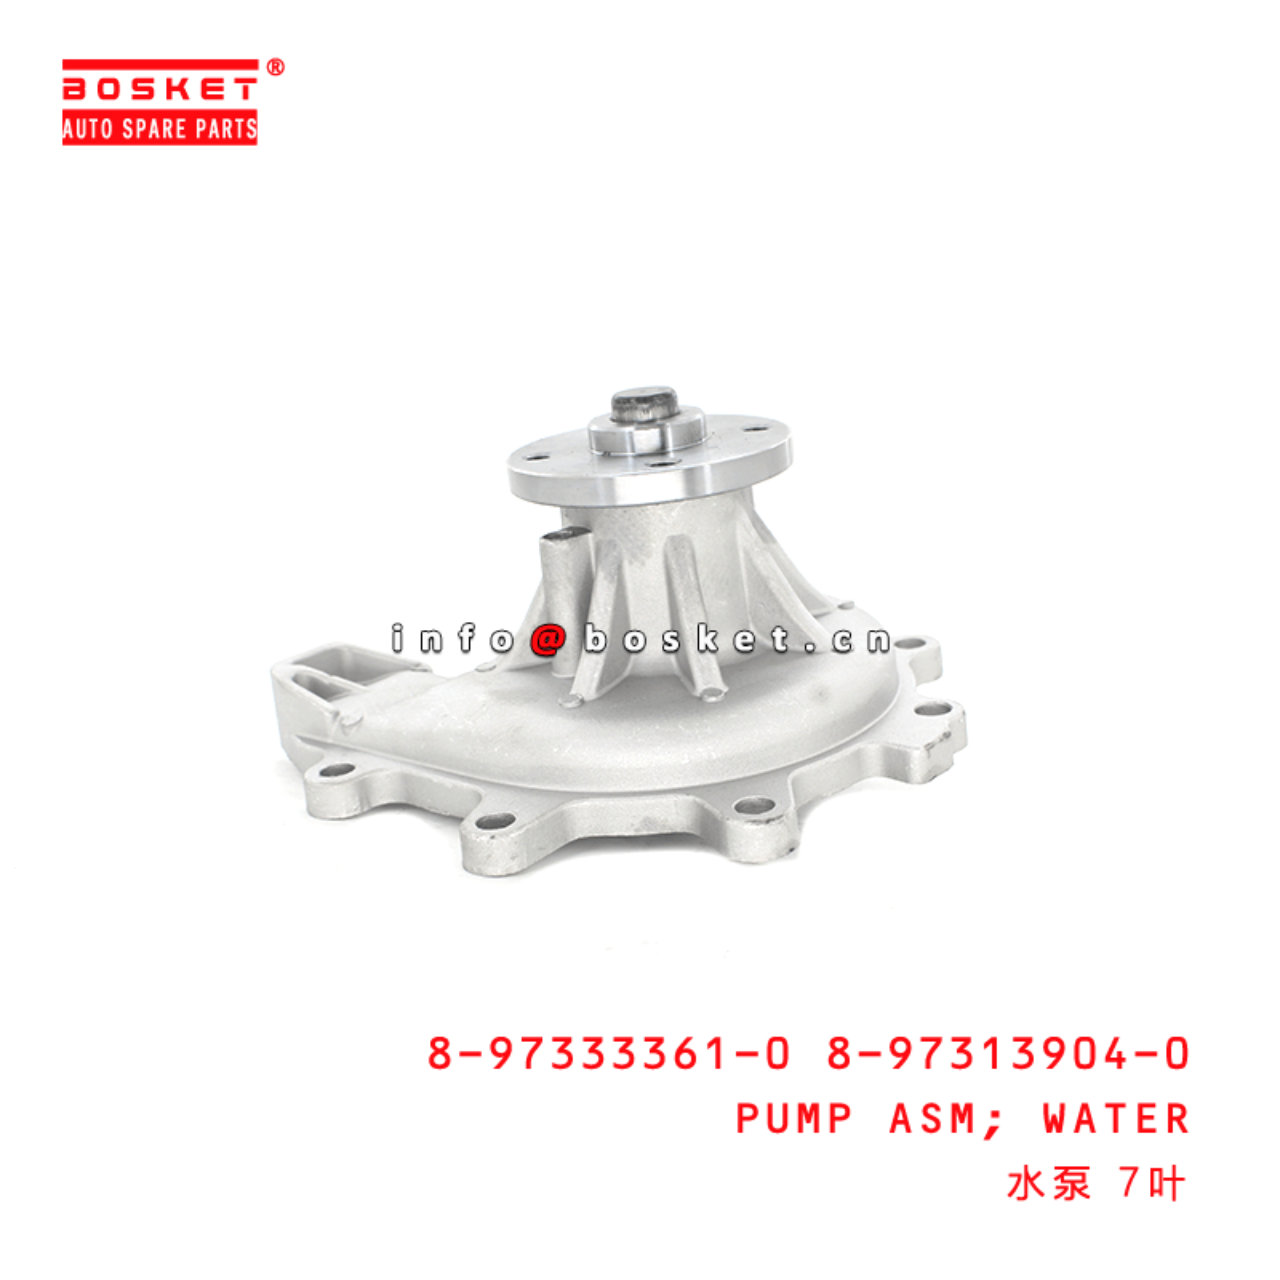 8-97333361-0 8-97313904-0 Water Pump Assembly 8973333610 8973139040 Suitable for ISUZU NPR66 4HF1